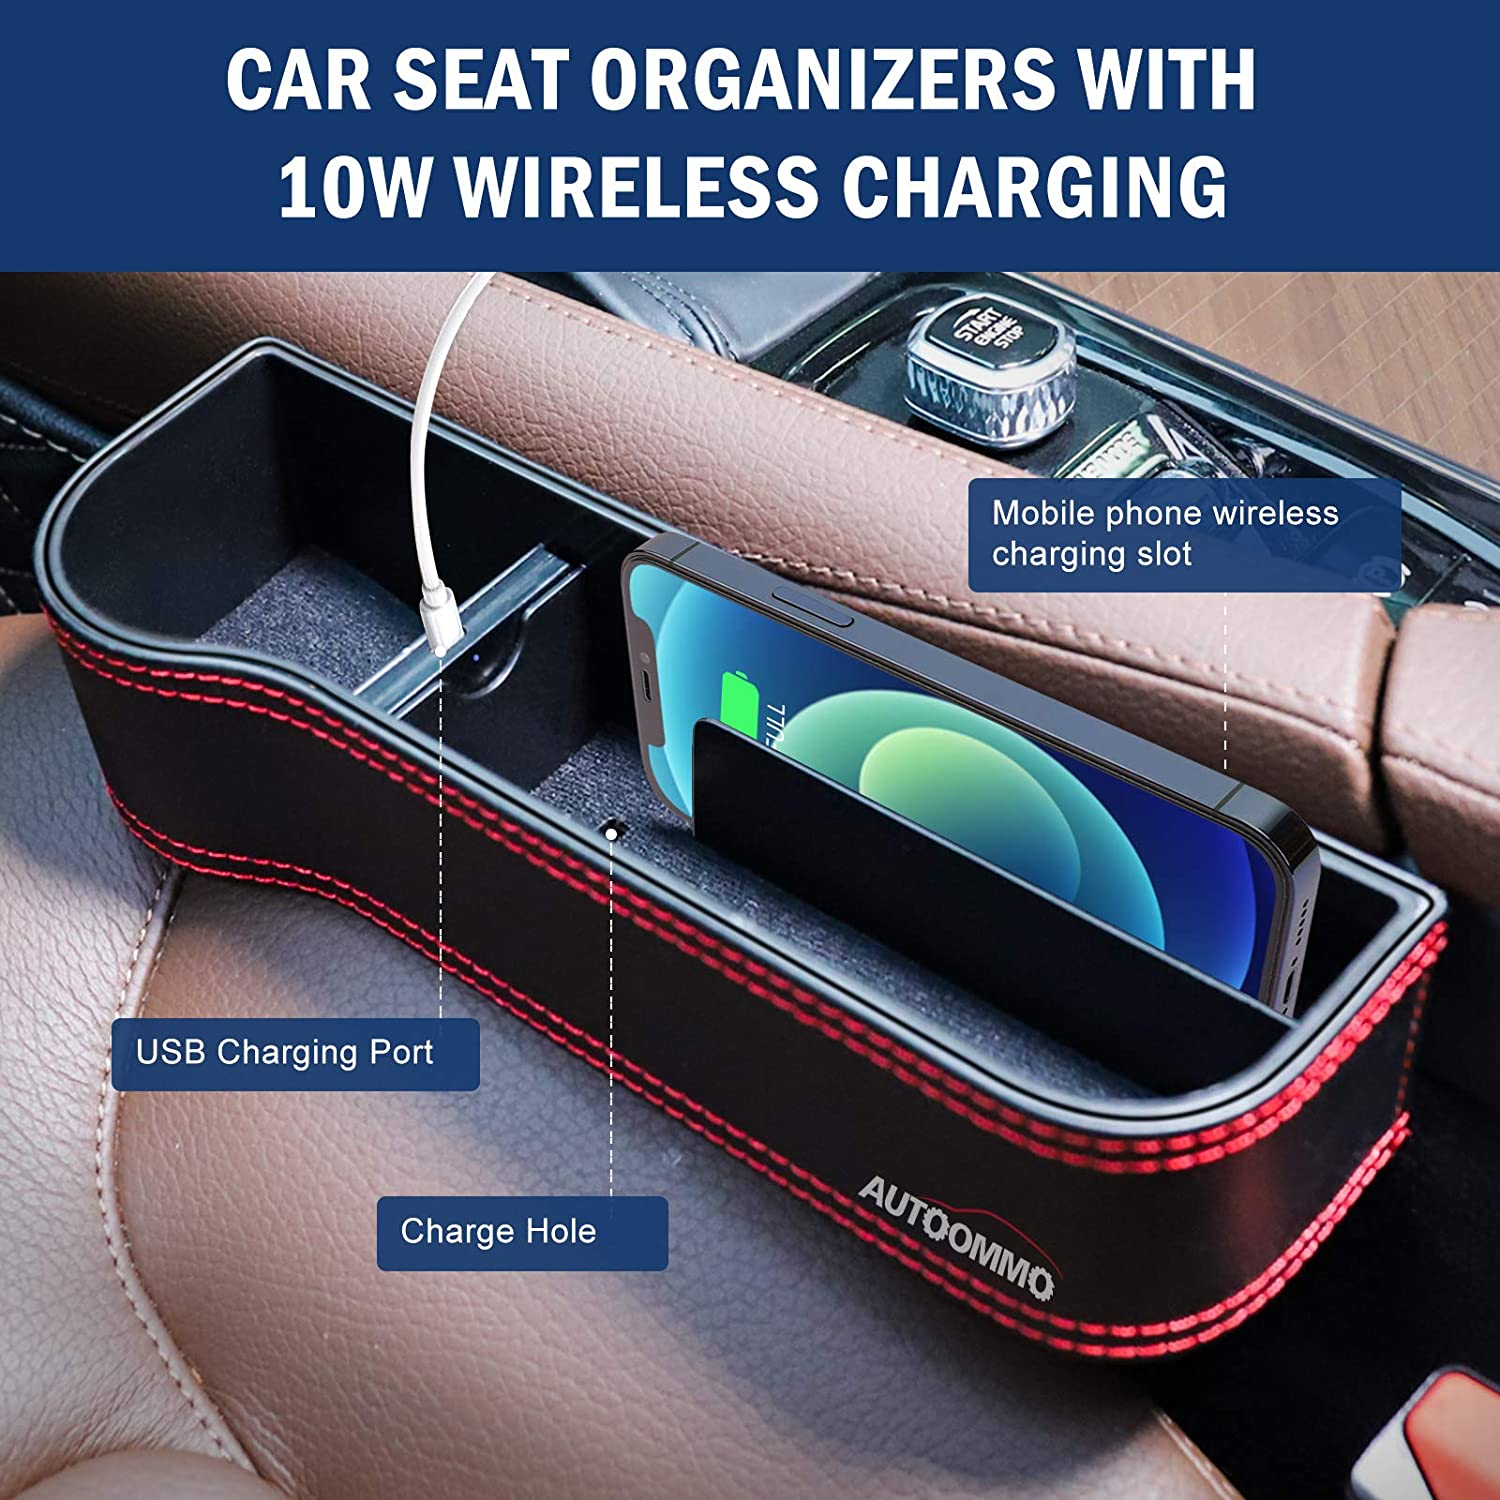 AUTOOMMO 2 Pack Car Seat Gap Organizer with 10W Wireless Charging Car Front Seat Organizer PU Leather Console Side Storage for Phones Wallets Keys Cards Sunglasses Car Seat Gap Filler